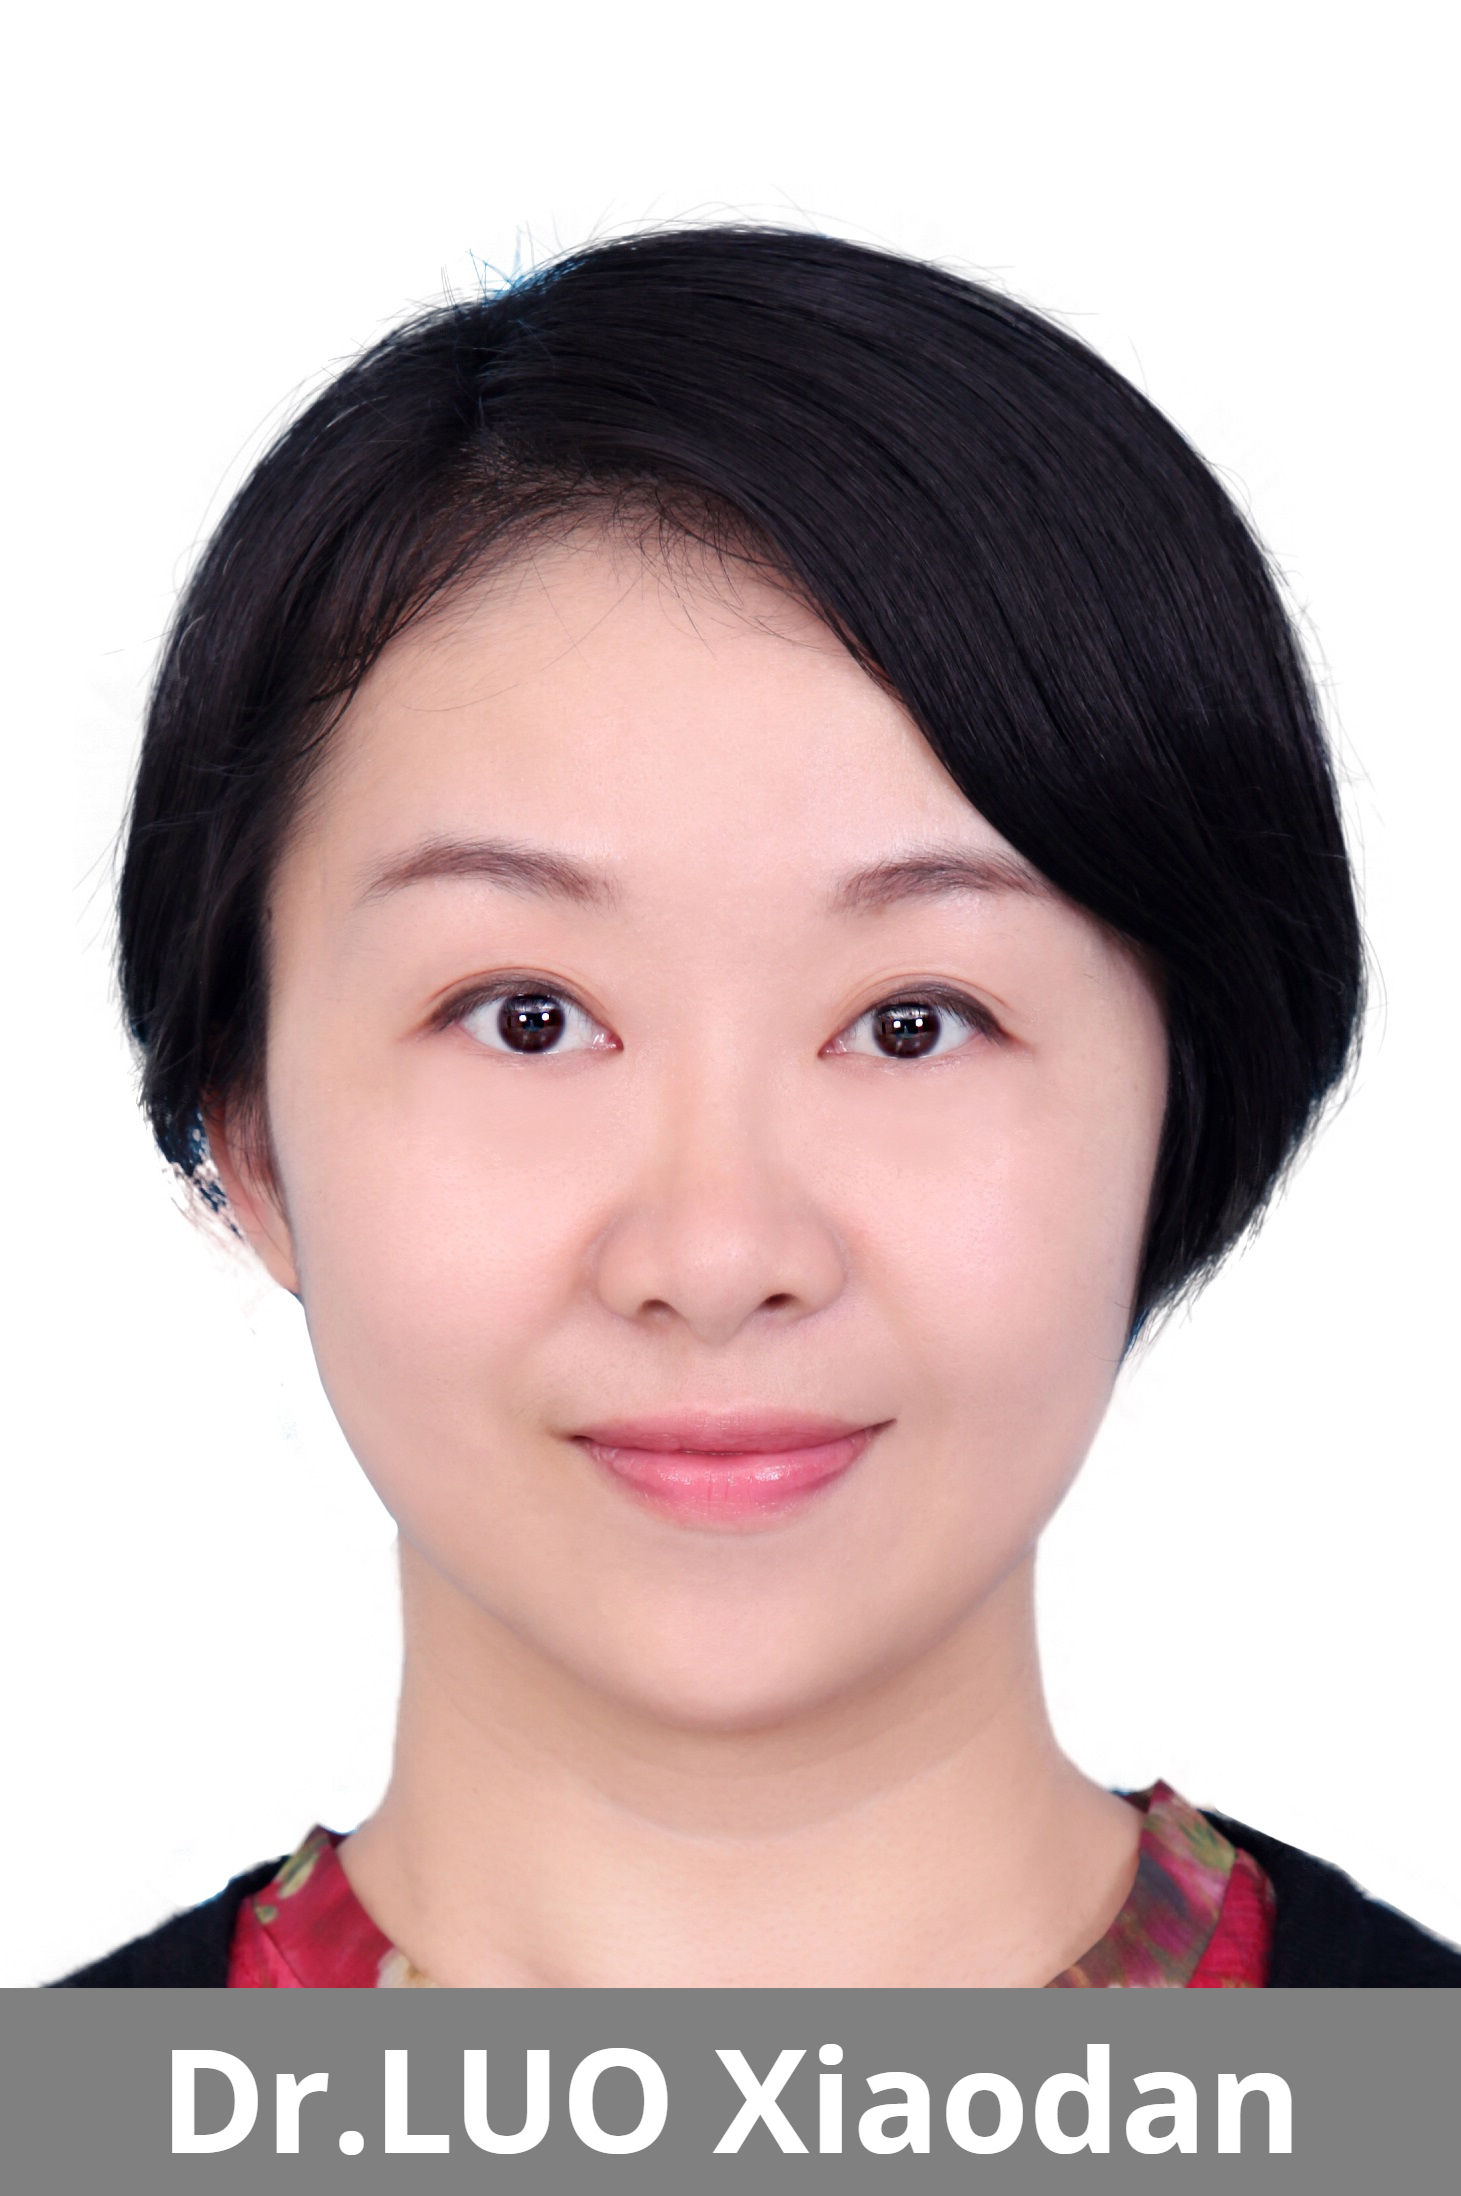 Dr.LUO Xiaodan